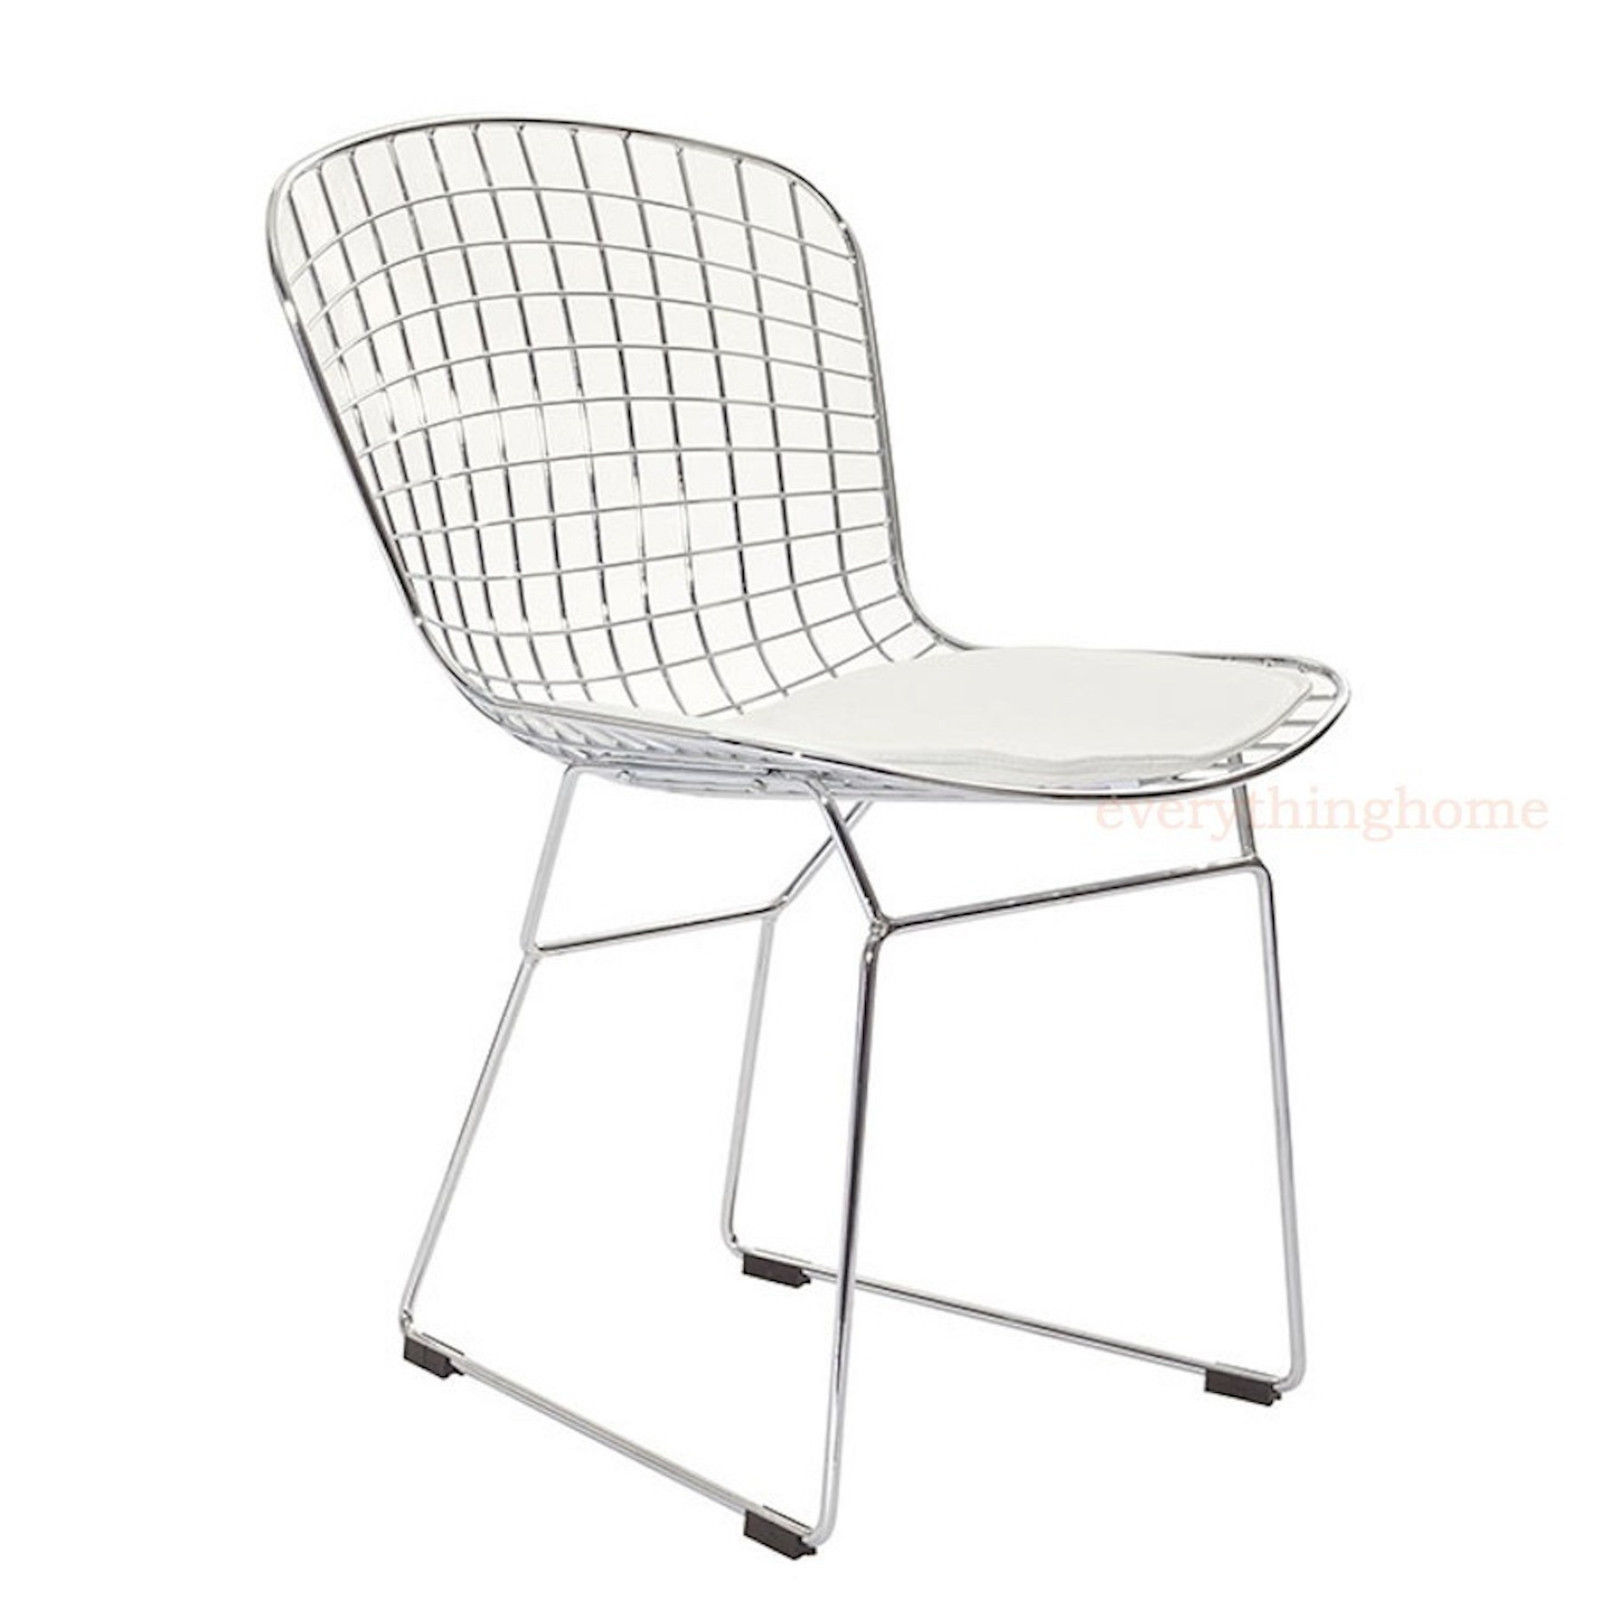 BERTOIA STYLE CHAIR DINING SIDE STEEL WIRE CHROME MESH WHITE PAD -331 LB WT RATE